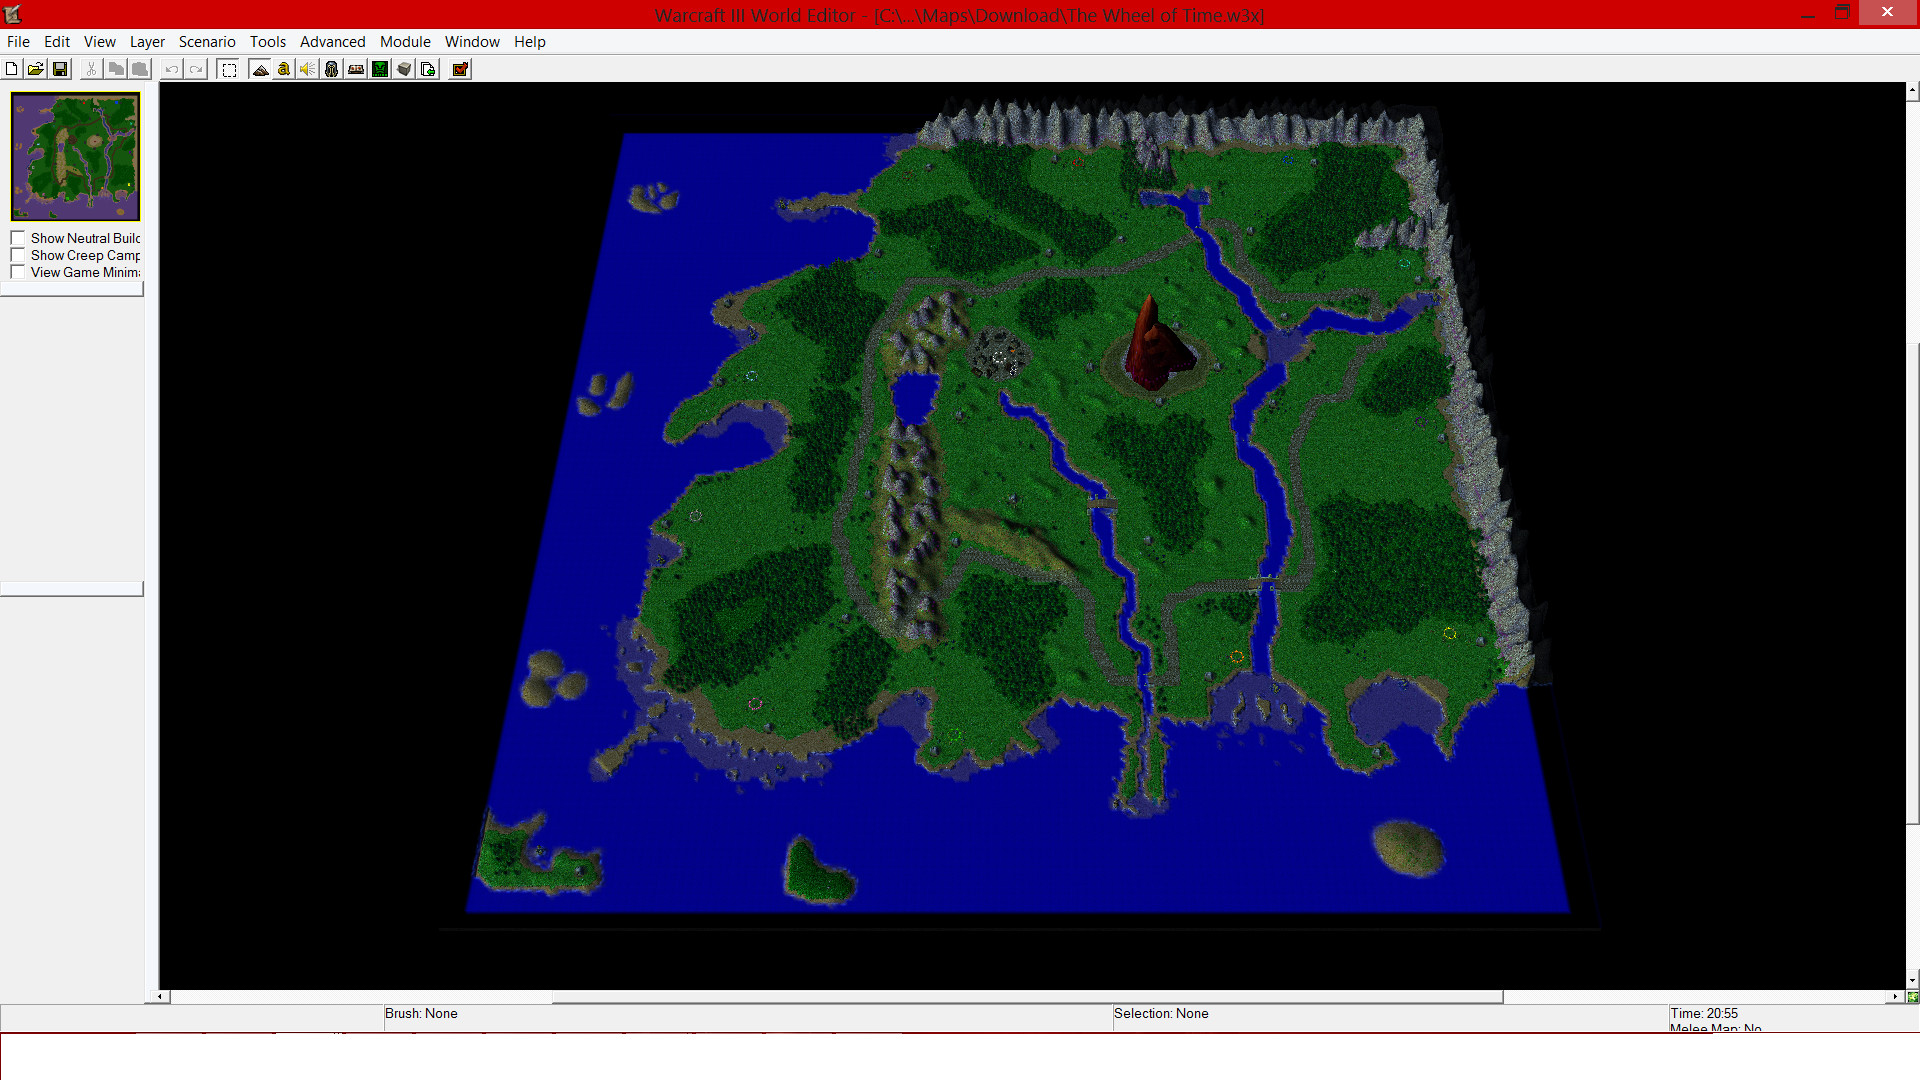 4 Factions: Dragon's Army, Dark One's Hordes, The White Tower, The  Seanchan; Recreation of …